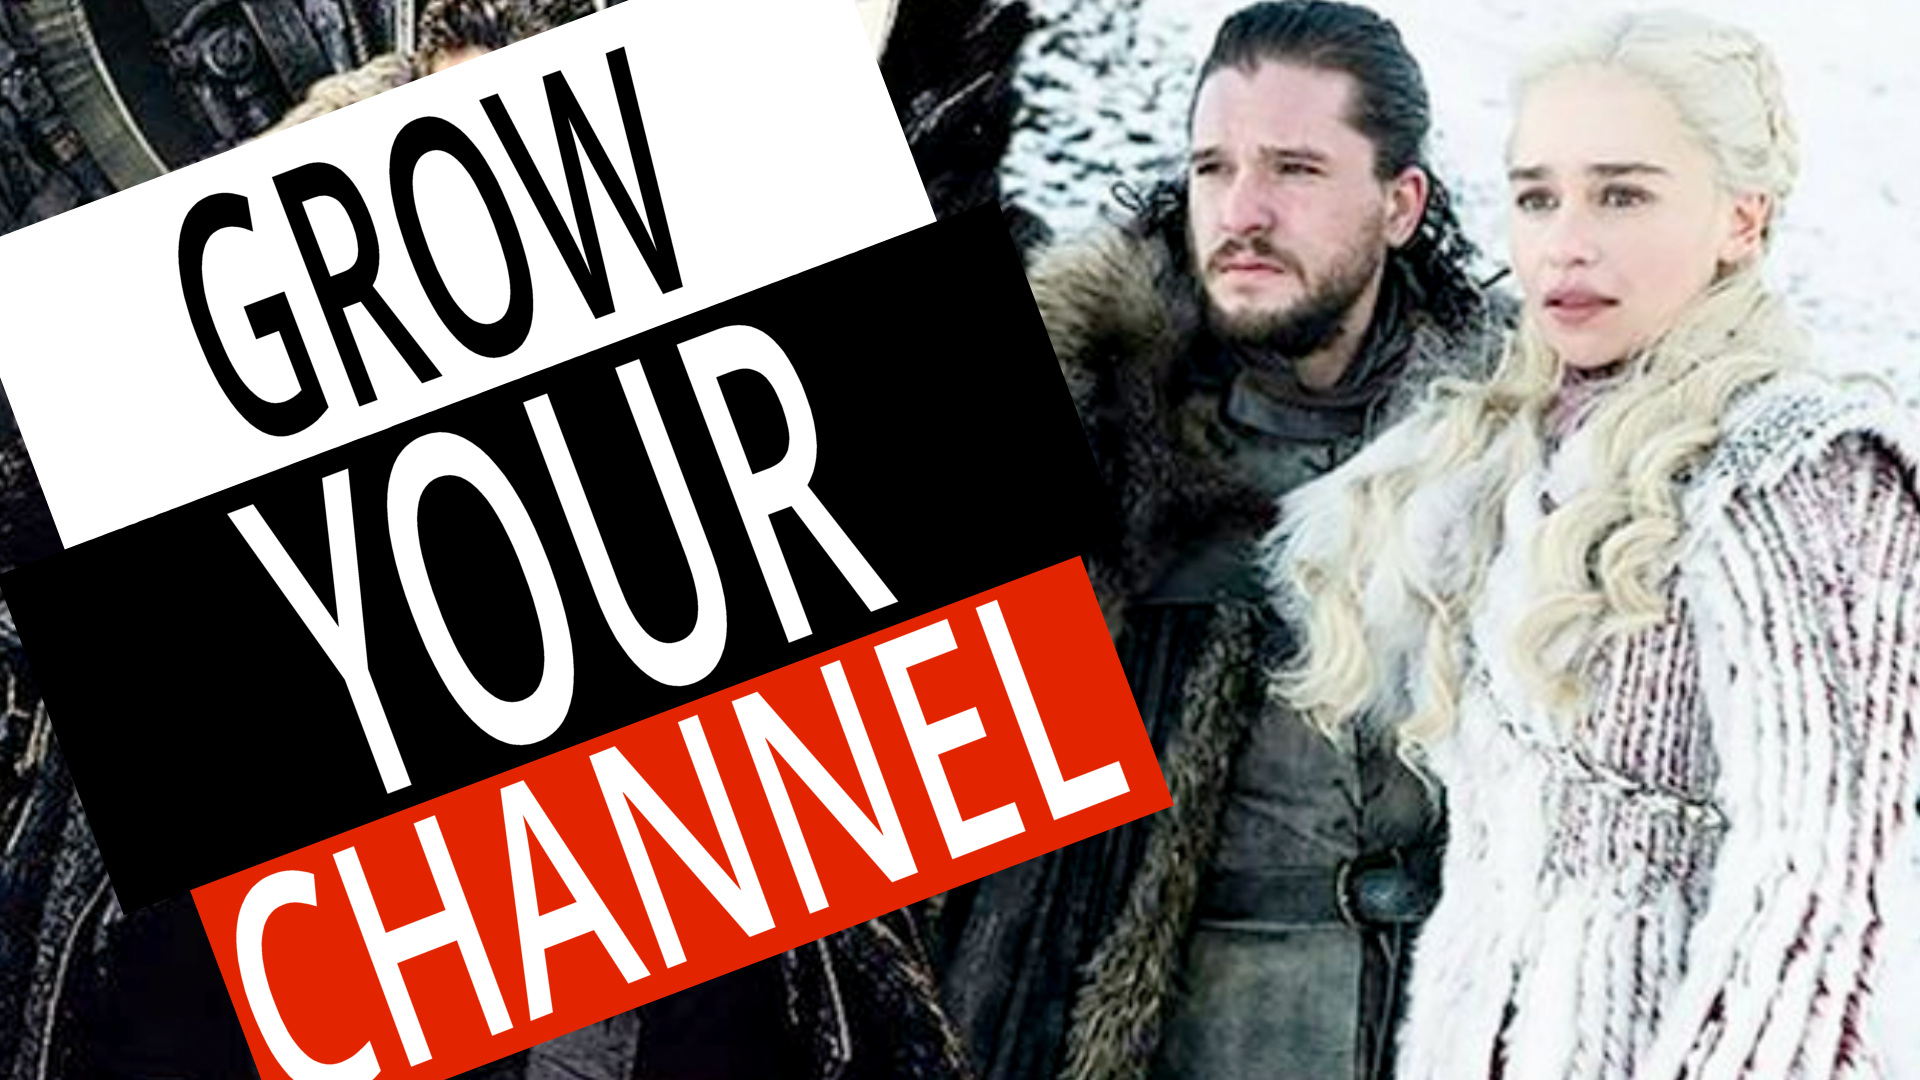 alan spicer,alanspicer,asyt,startcreating,start creating,game of thrones,Game Of Thrones Season 8,GROW Your YouTube Channel,grow your youtube channel 2019,grow your youtube channel fast,how to grow your youtube channel fast,grow youtube channel,grow youtube channel 2019,grow youtube channel fast,got8,game of thrones 2019,game of thrones 8,grow youtube channel faster,grow your youtube channel fast 2019,game of thrones cosplay,game of thrones finale